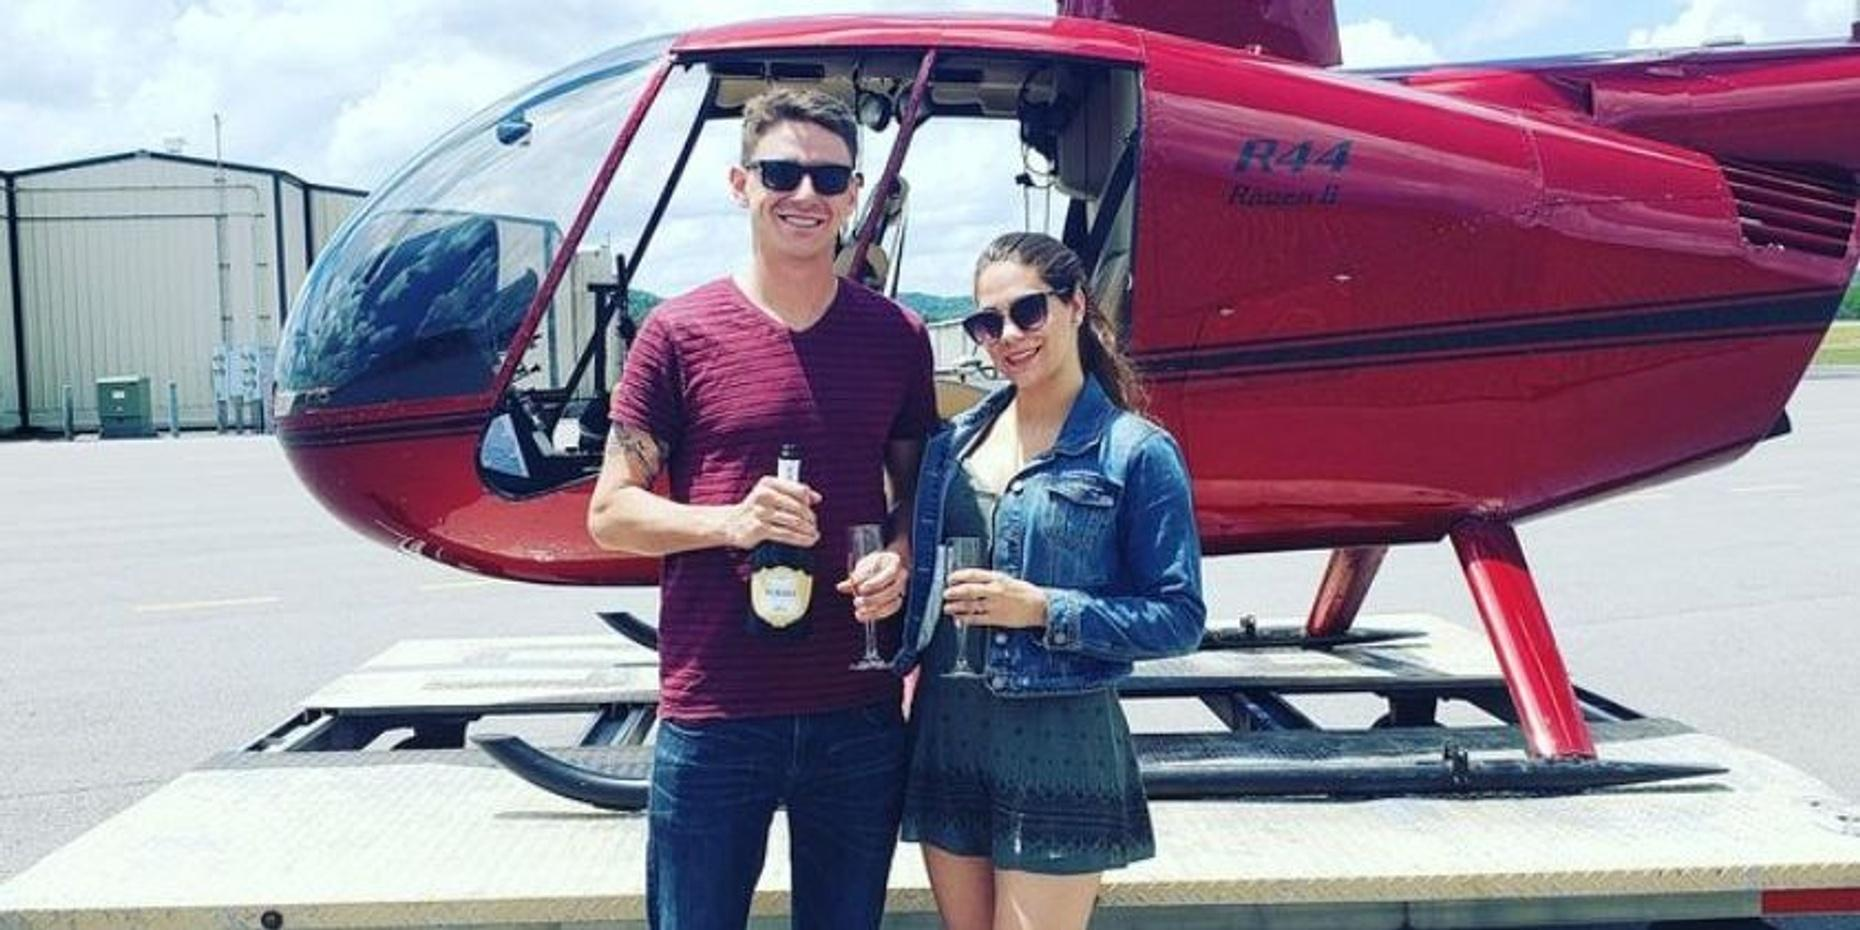 Helicopter Tour of Music City (20 mins)